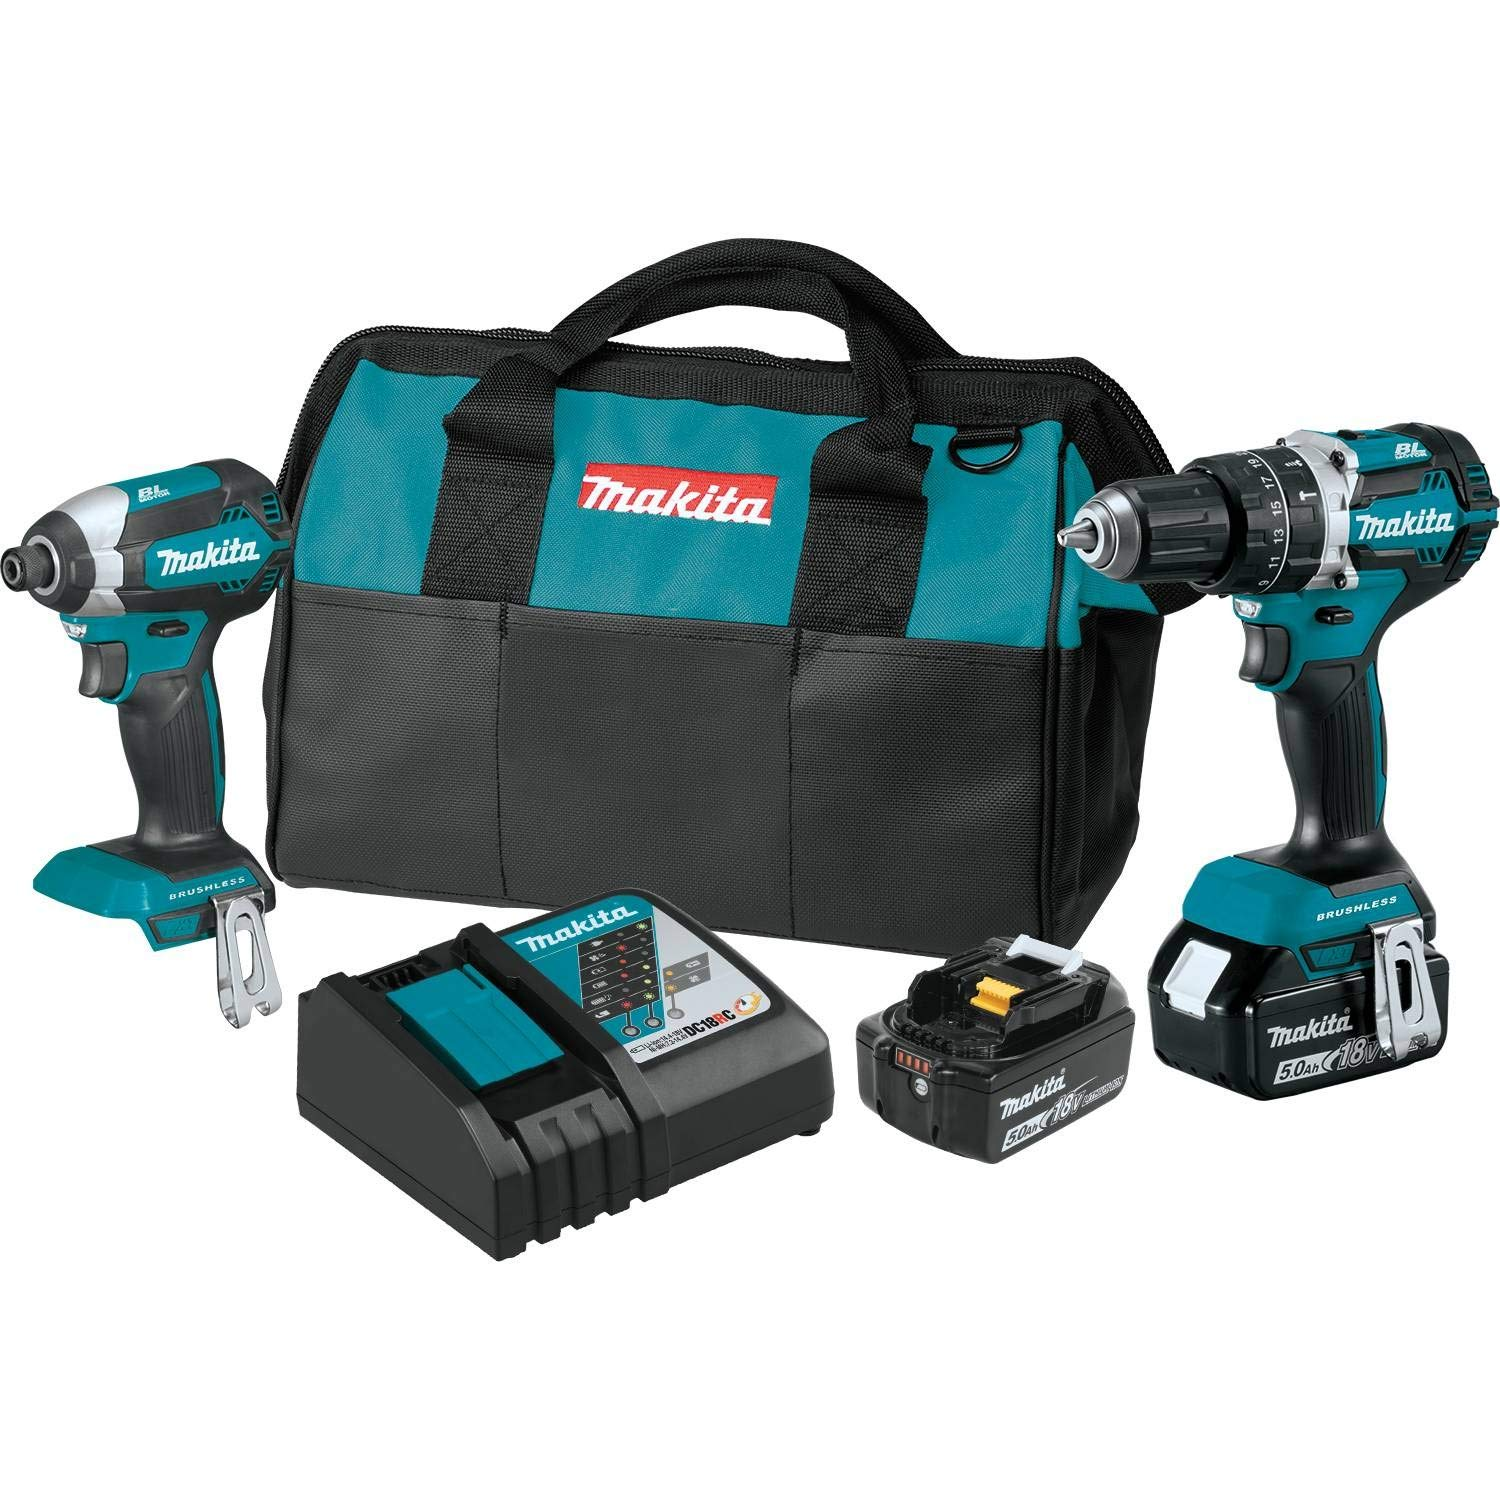 Makita XT269T 18V LXT Lithium-Ion Brushless Cordless 2-Pc. Combo Kit 5.0Ah